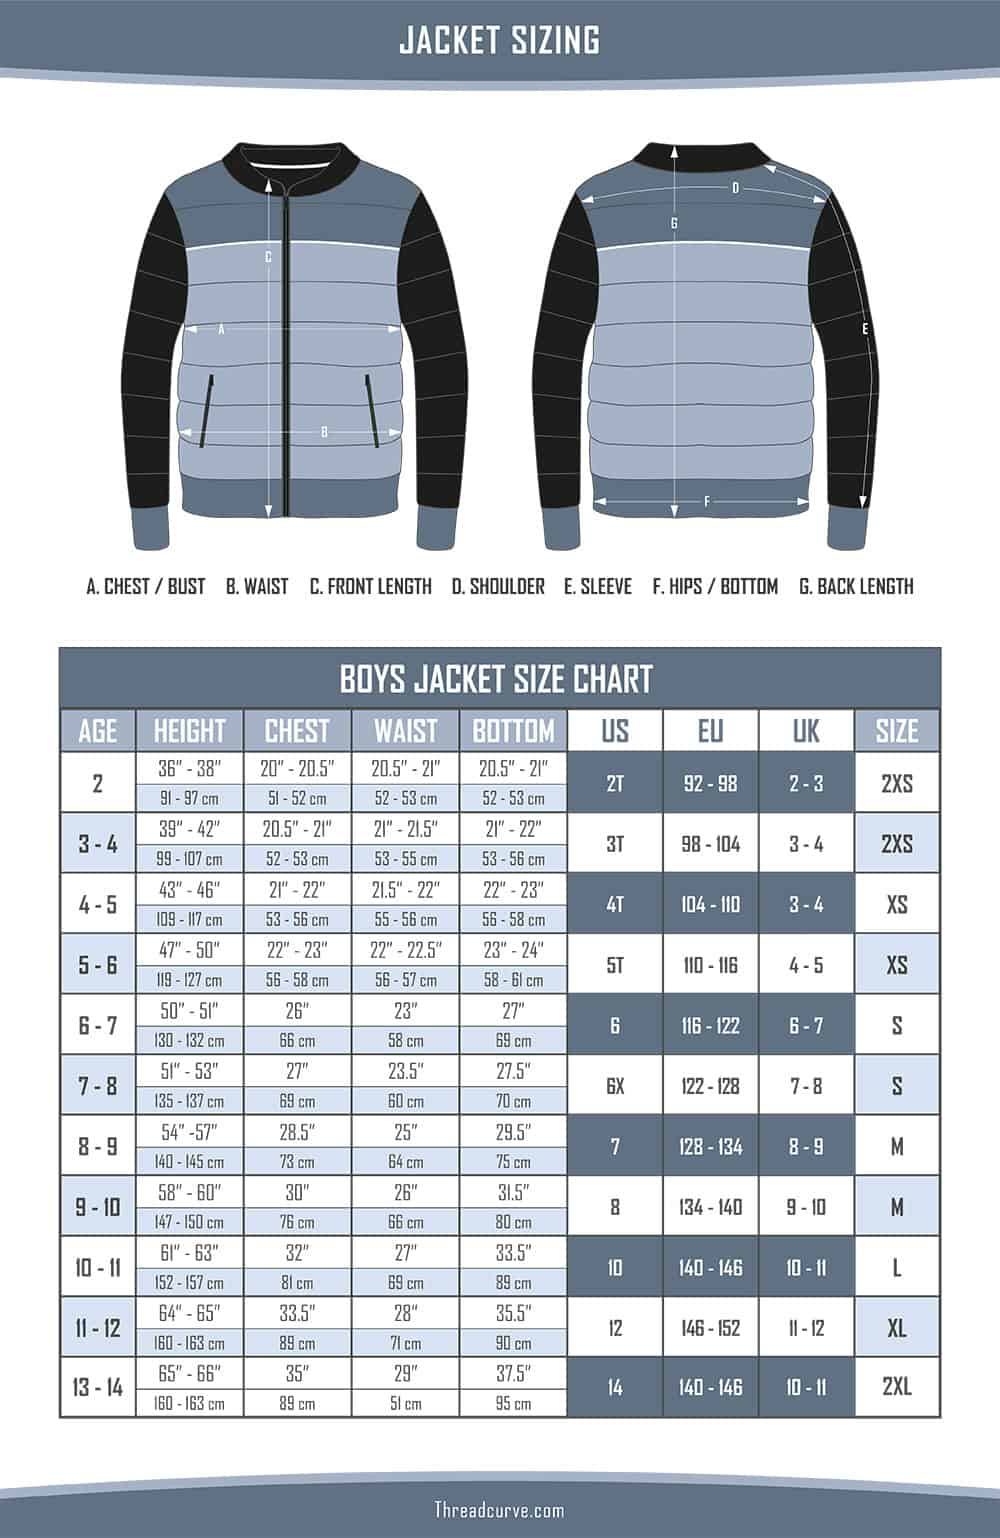 This is the chart for the Boys Jackets Sizes.